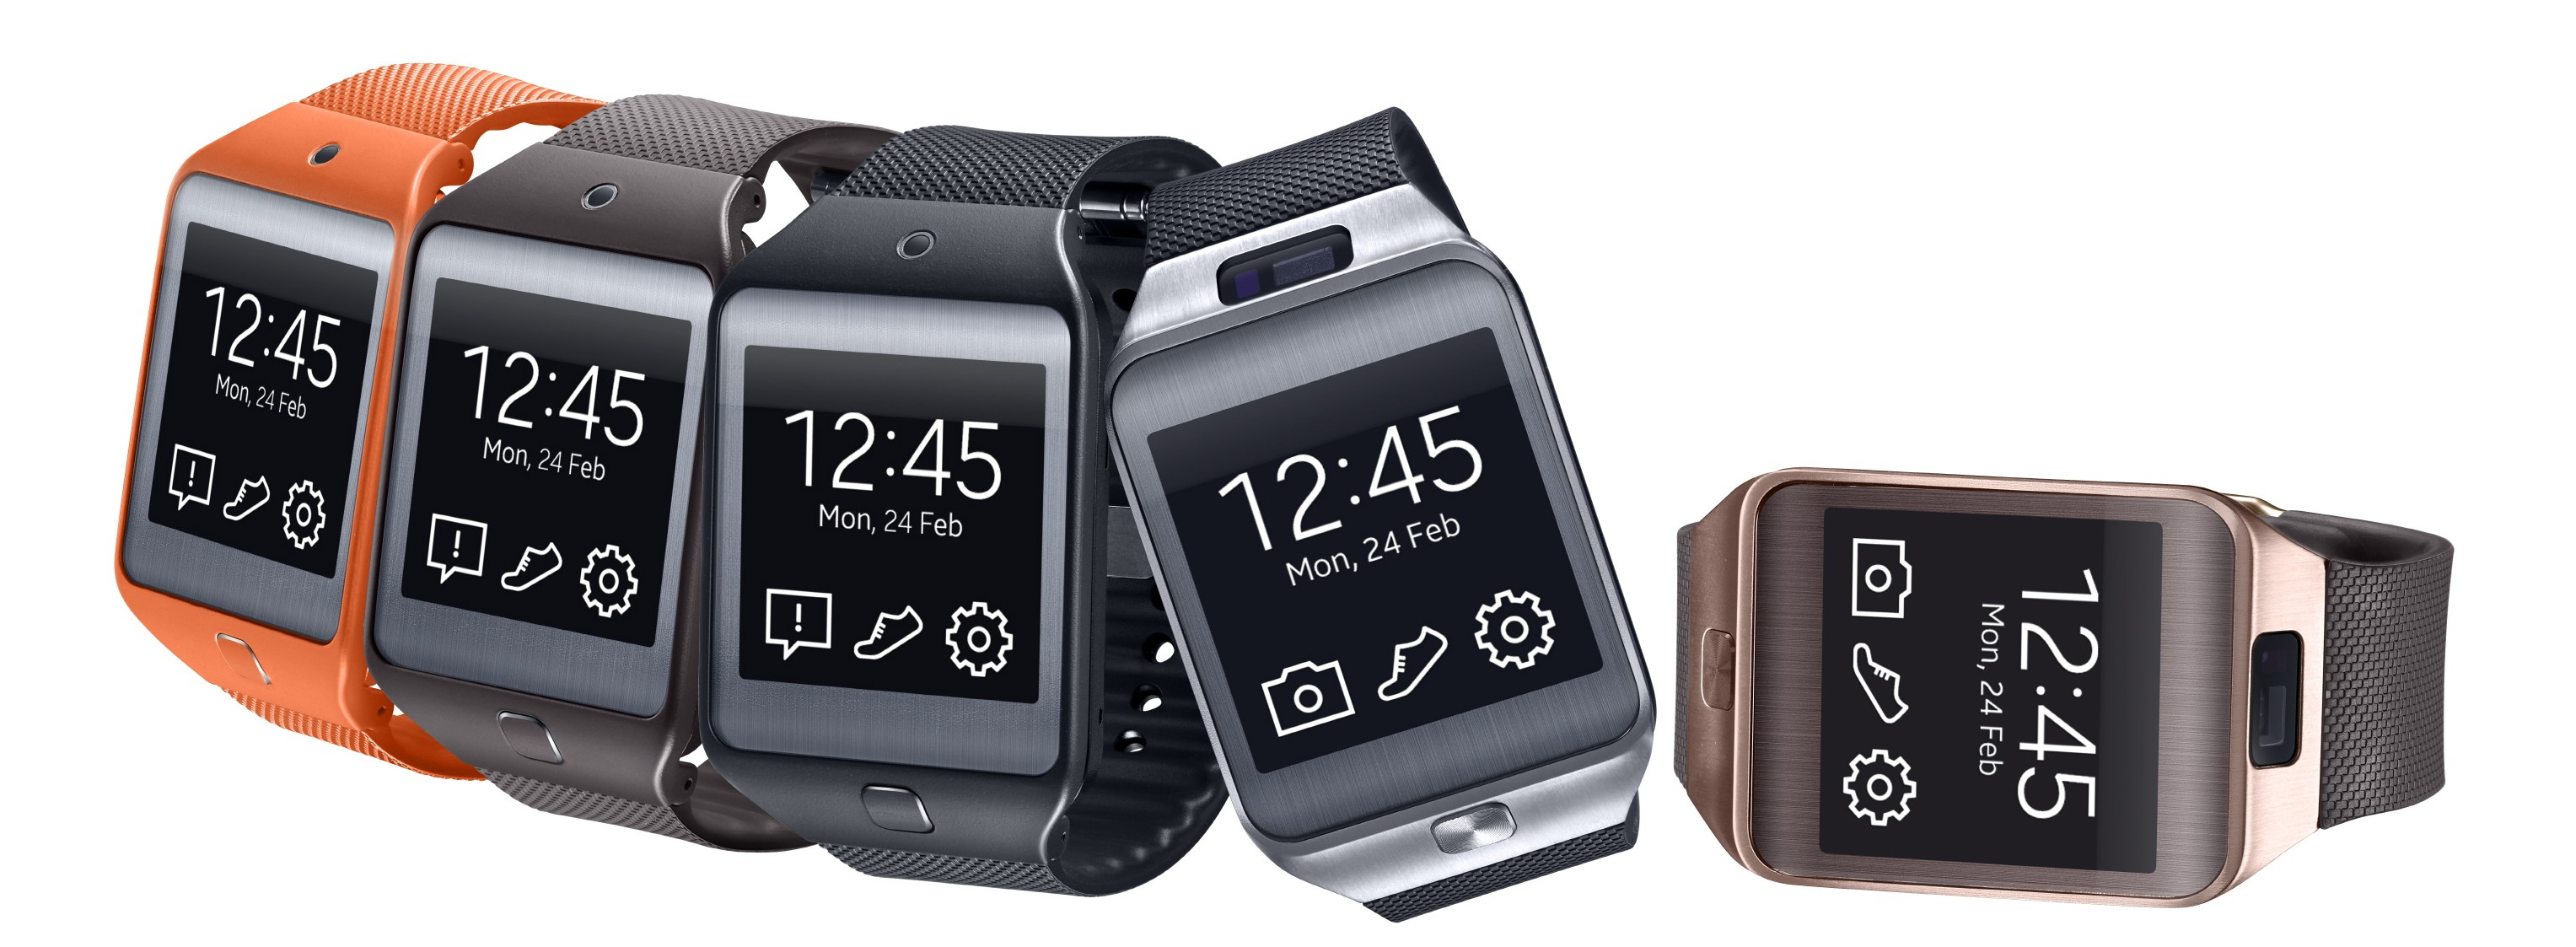 samsung gear 2 gear 2 neo and gear fit compatibility list. Black Bedroom Furniture Sets. Home Design Ideas